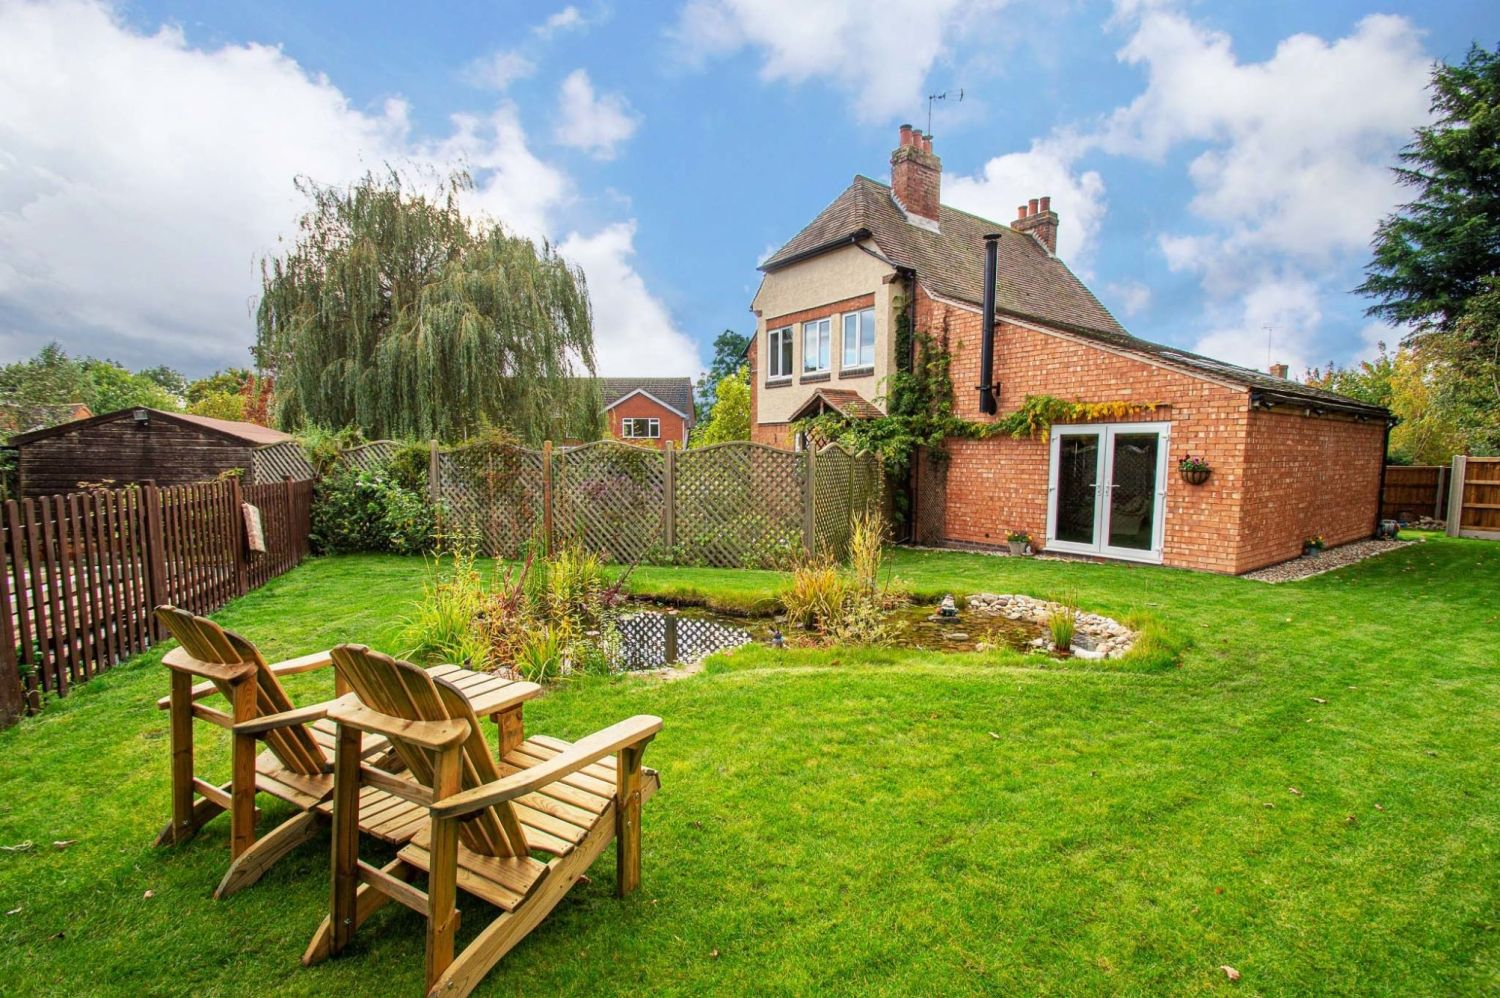 3 bed detached for sale in Longhope Close, Winyates Green  - Property Image 24